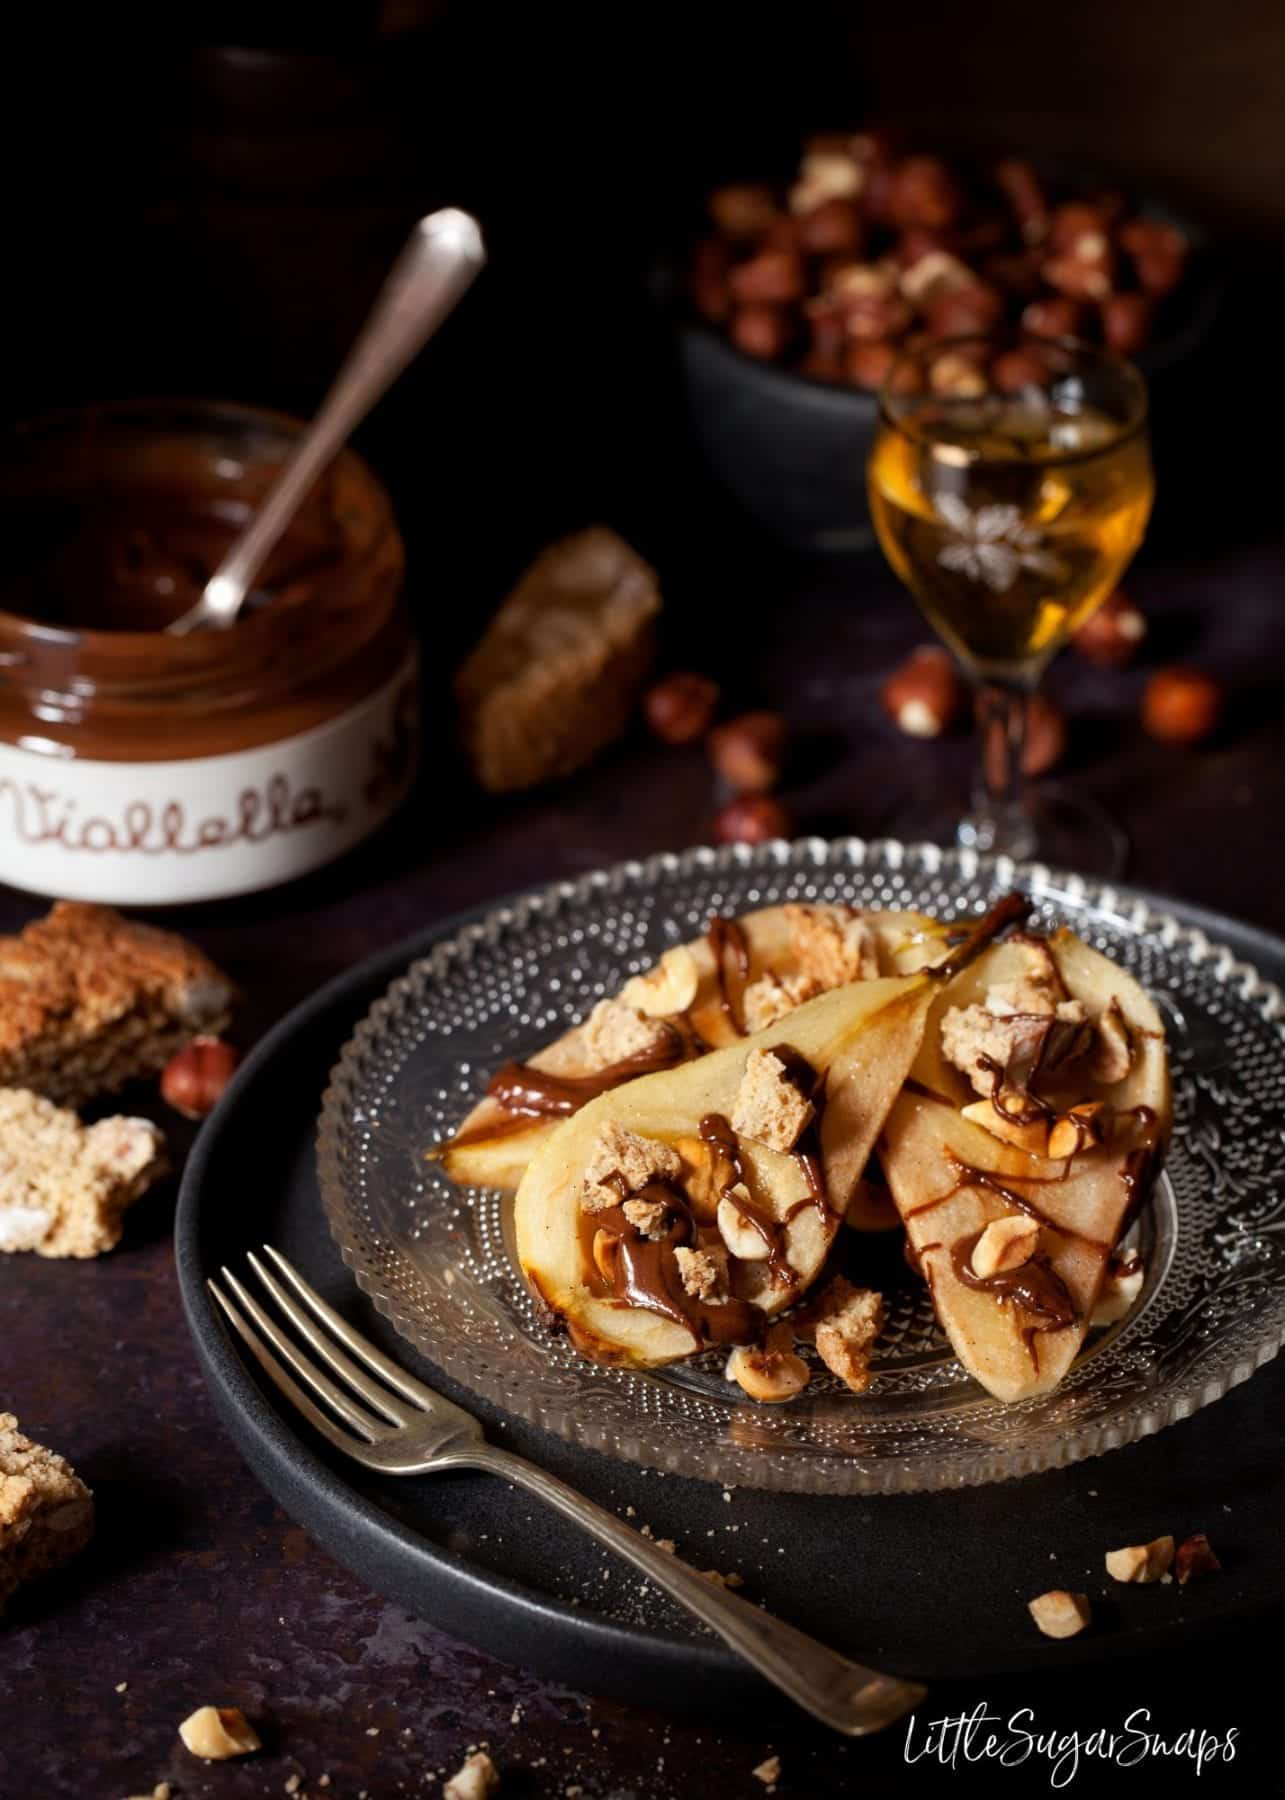 Honey Baked Pears with Chocolate, cantucci biscuits on a plate with a glass of vin santo.